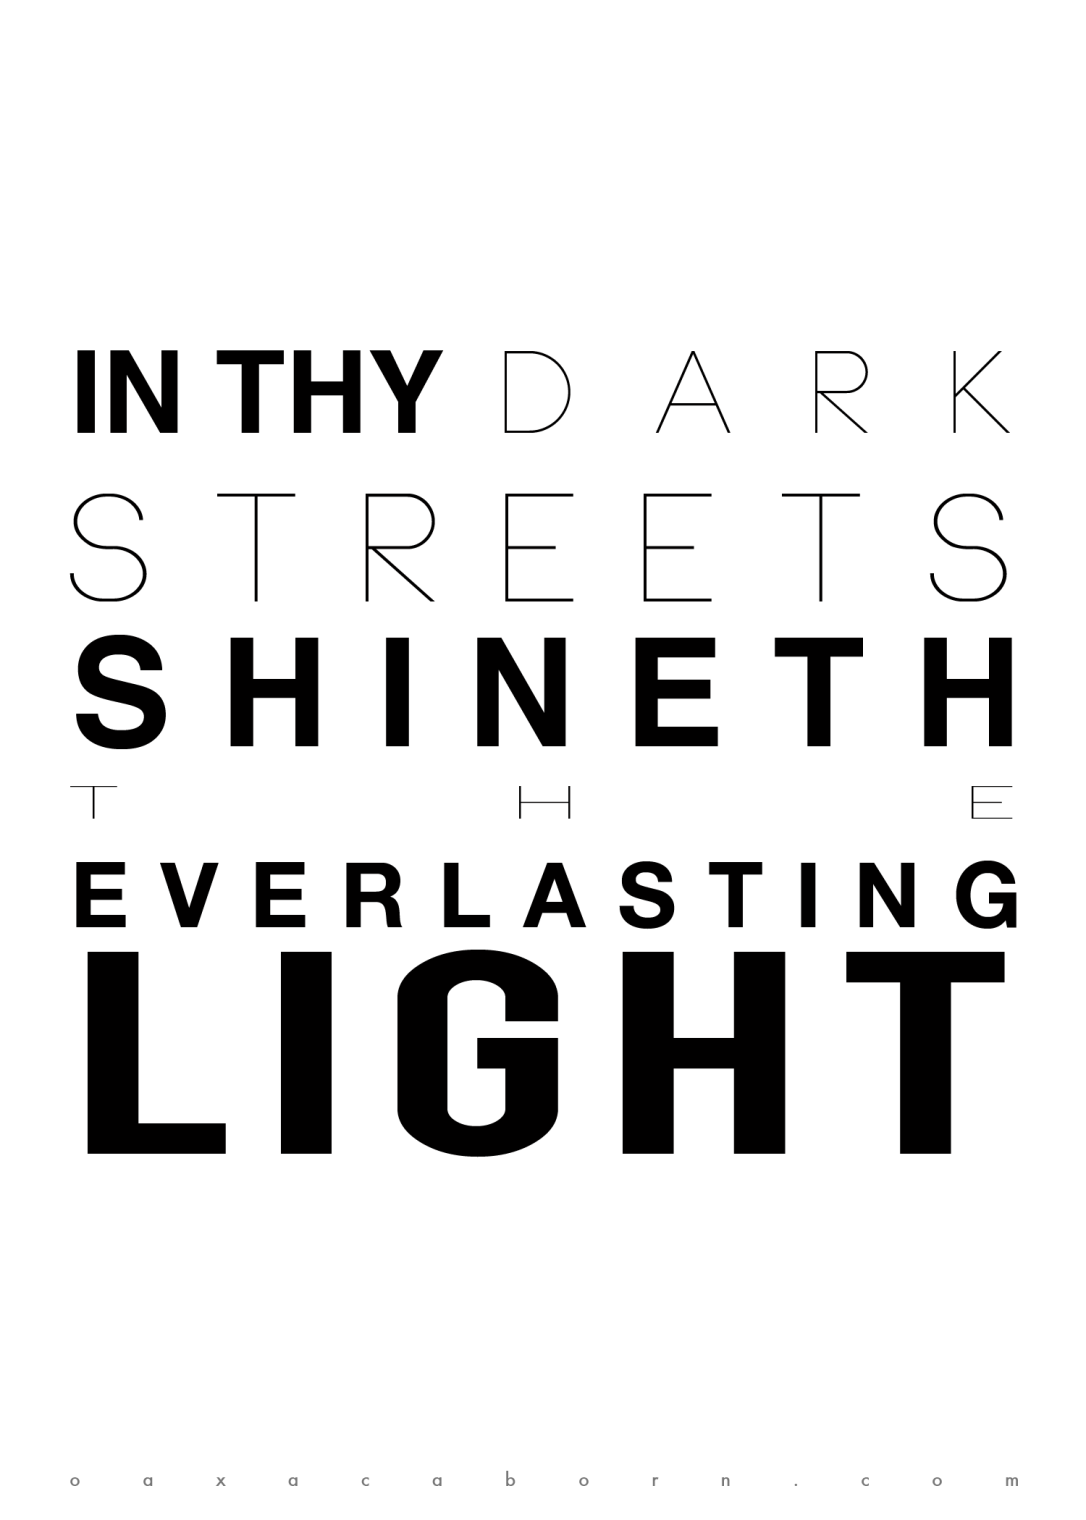 In thy dark streets shineth the everlasting light - Minimalist Christmas Poster - Christmas Typography via Oaxacaborn